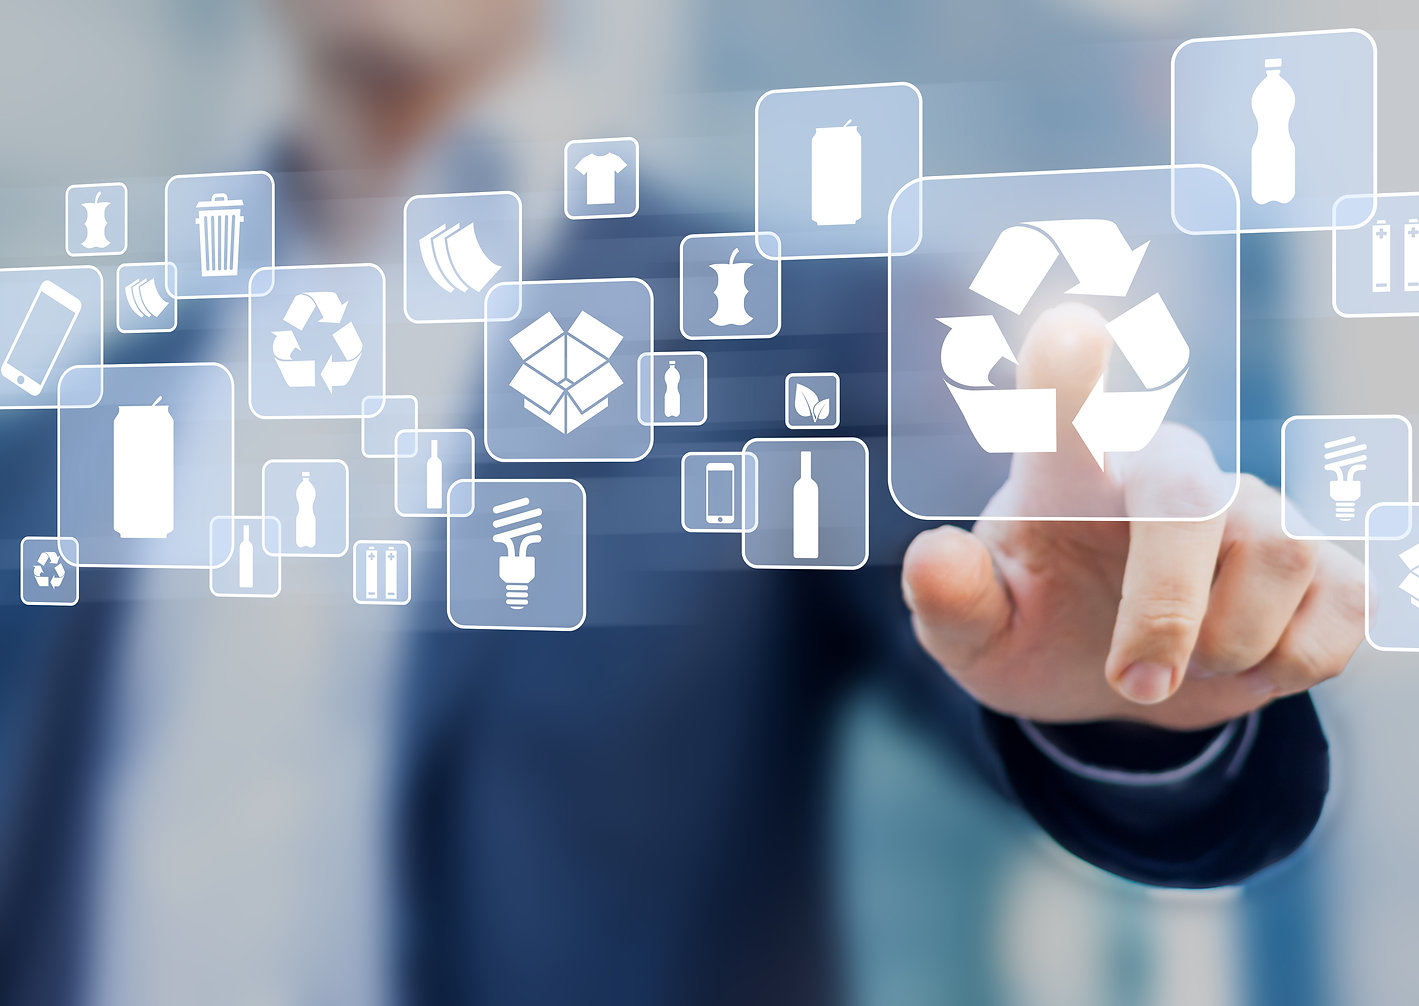 Recyclable waste materials sorting manag